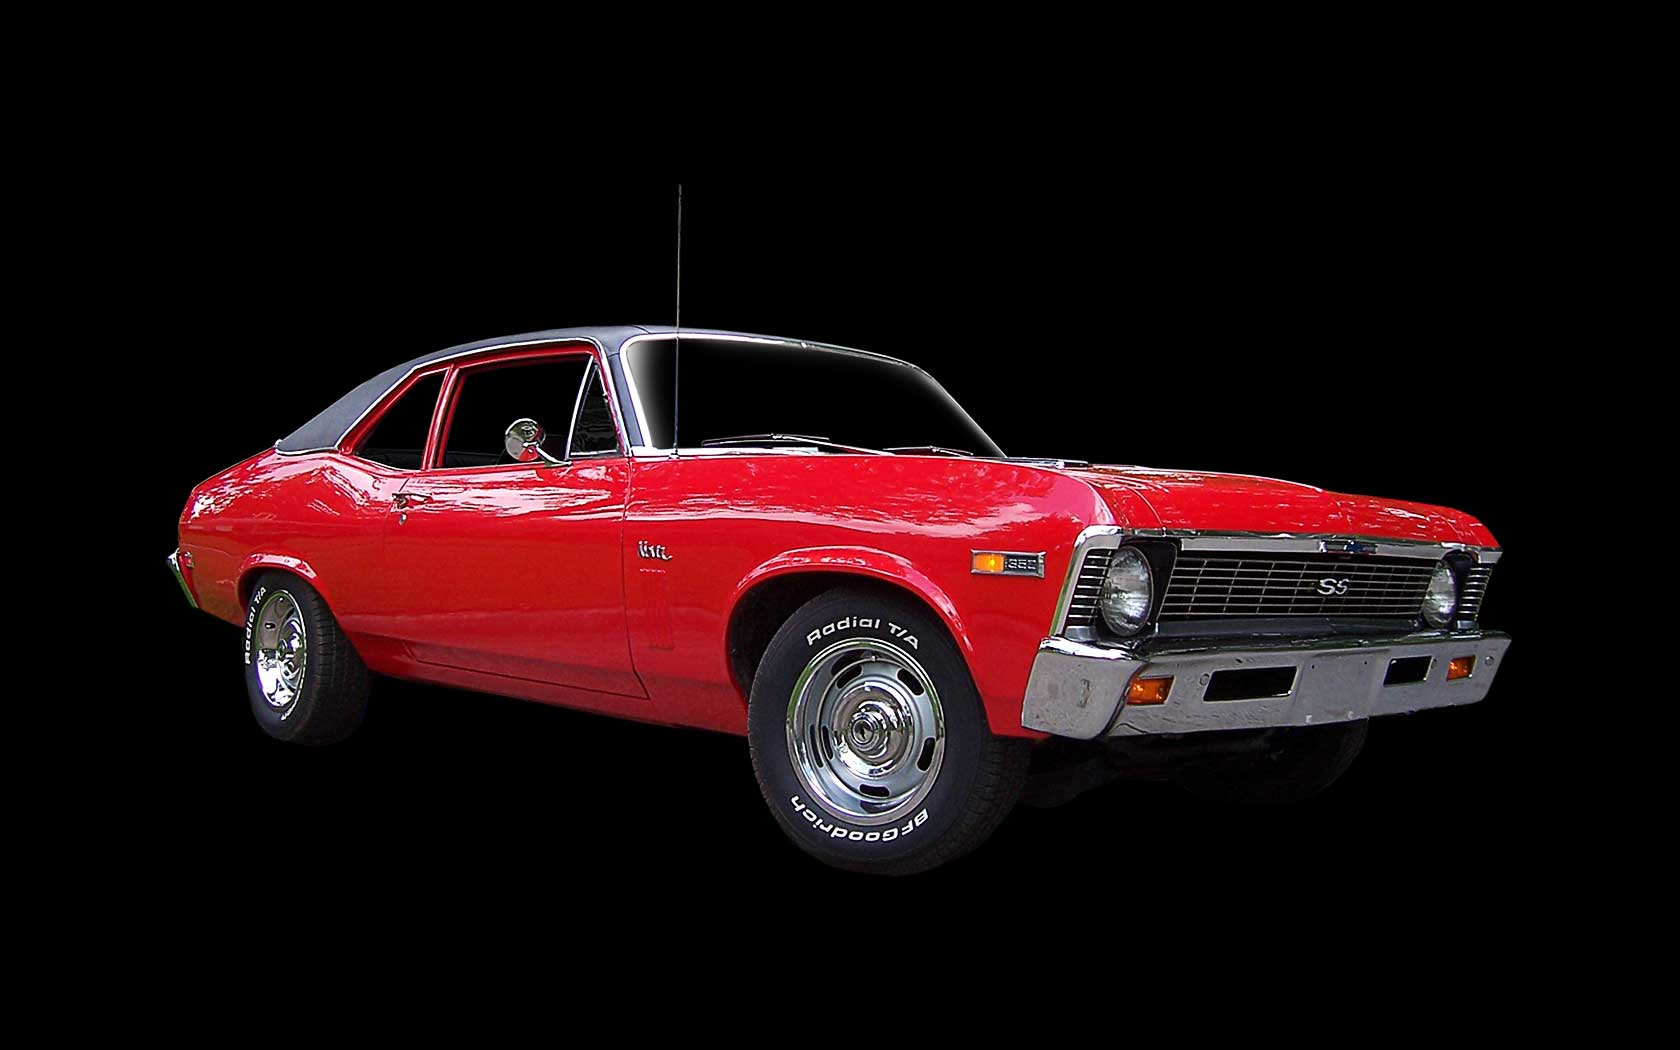 Chevy Muscle Car Wallpaper 4974 Hd Wallpapers in Cars   Imagescicom 1680x1050